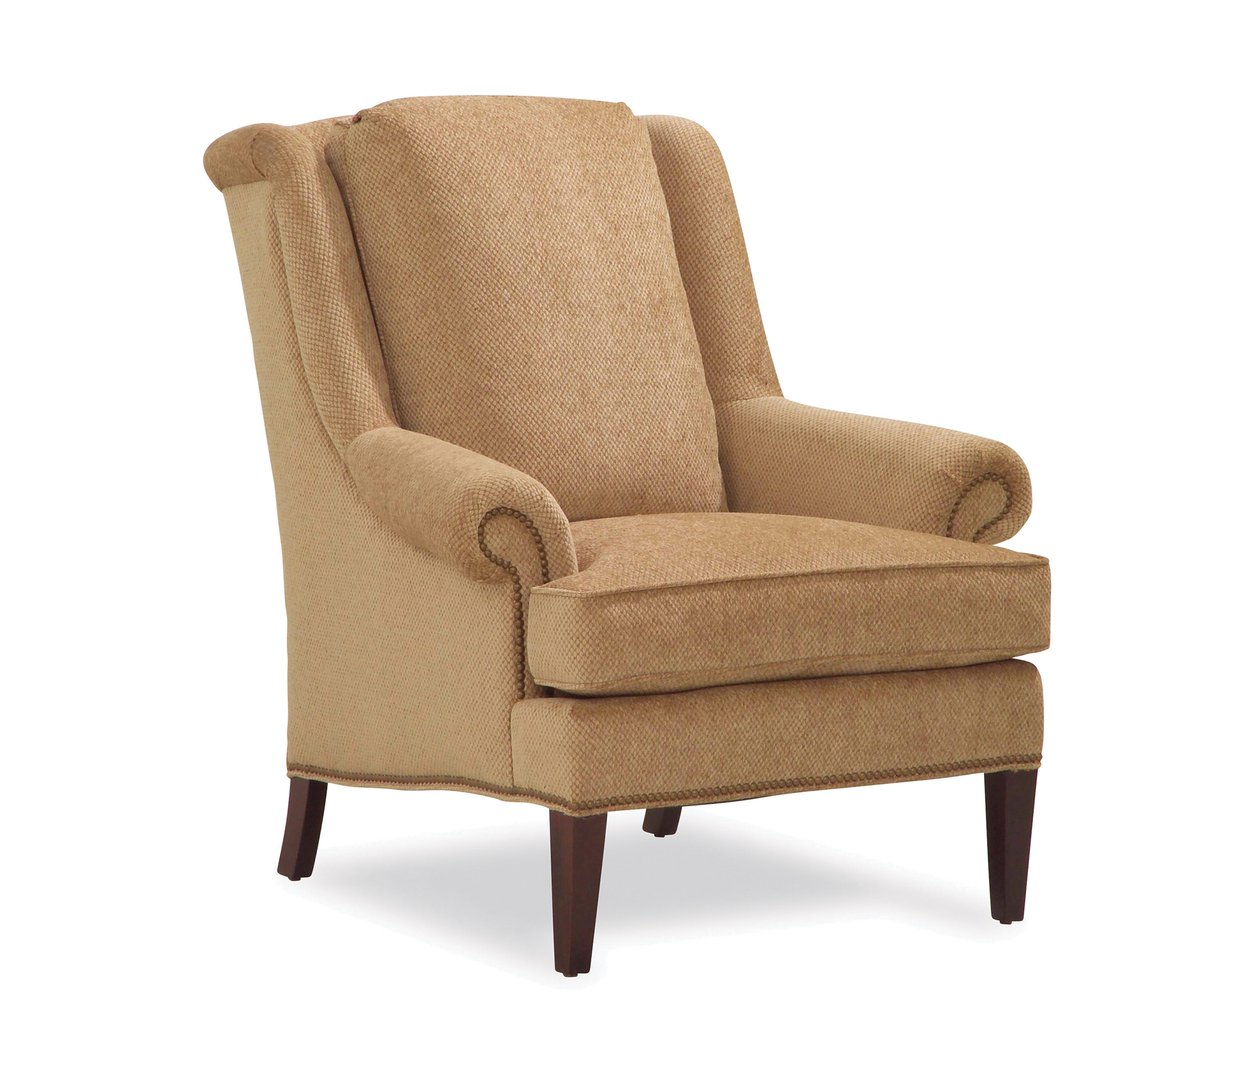 McAllister chair Image